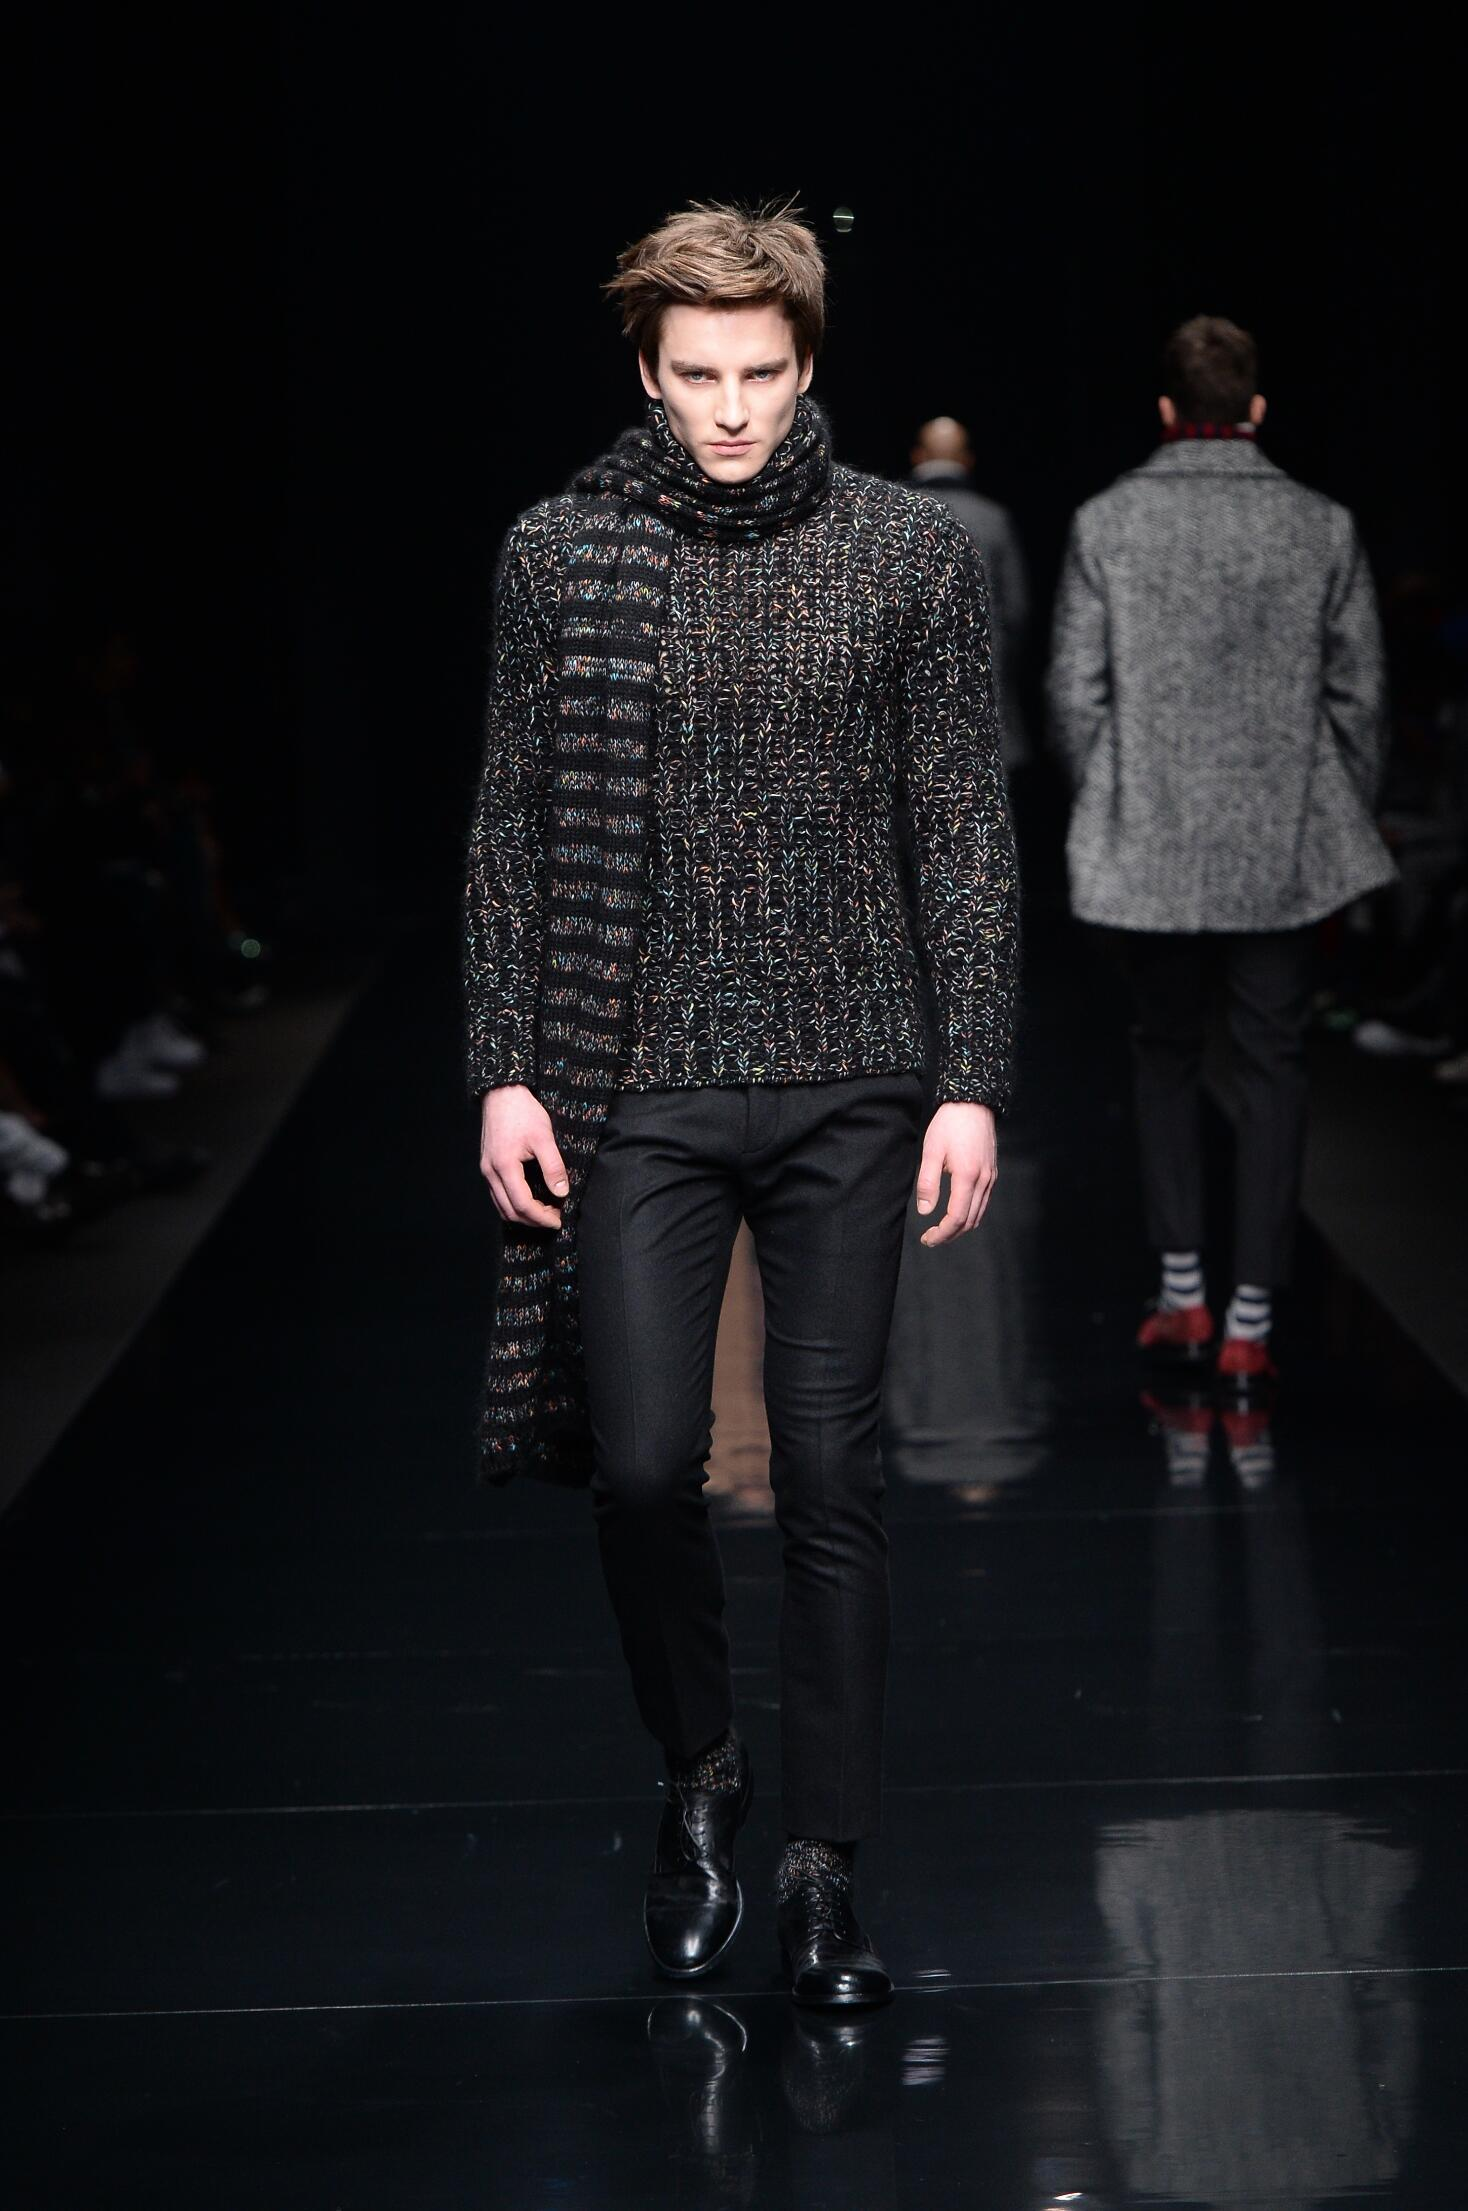 Ermanno Scervino Fall Winter 2015 16 Men's Collection Milan Fashion Week Fashion Show